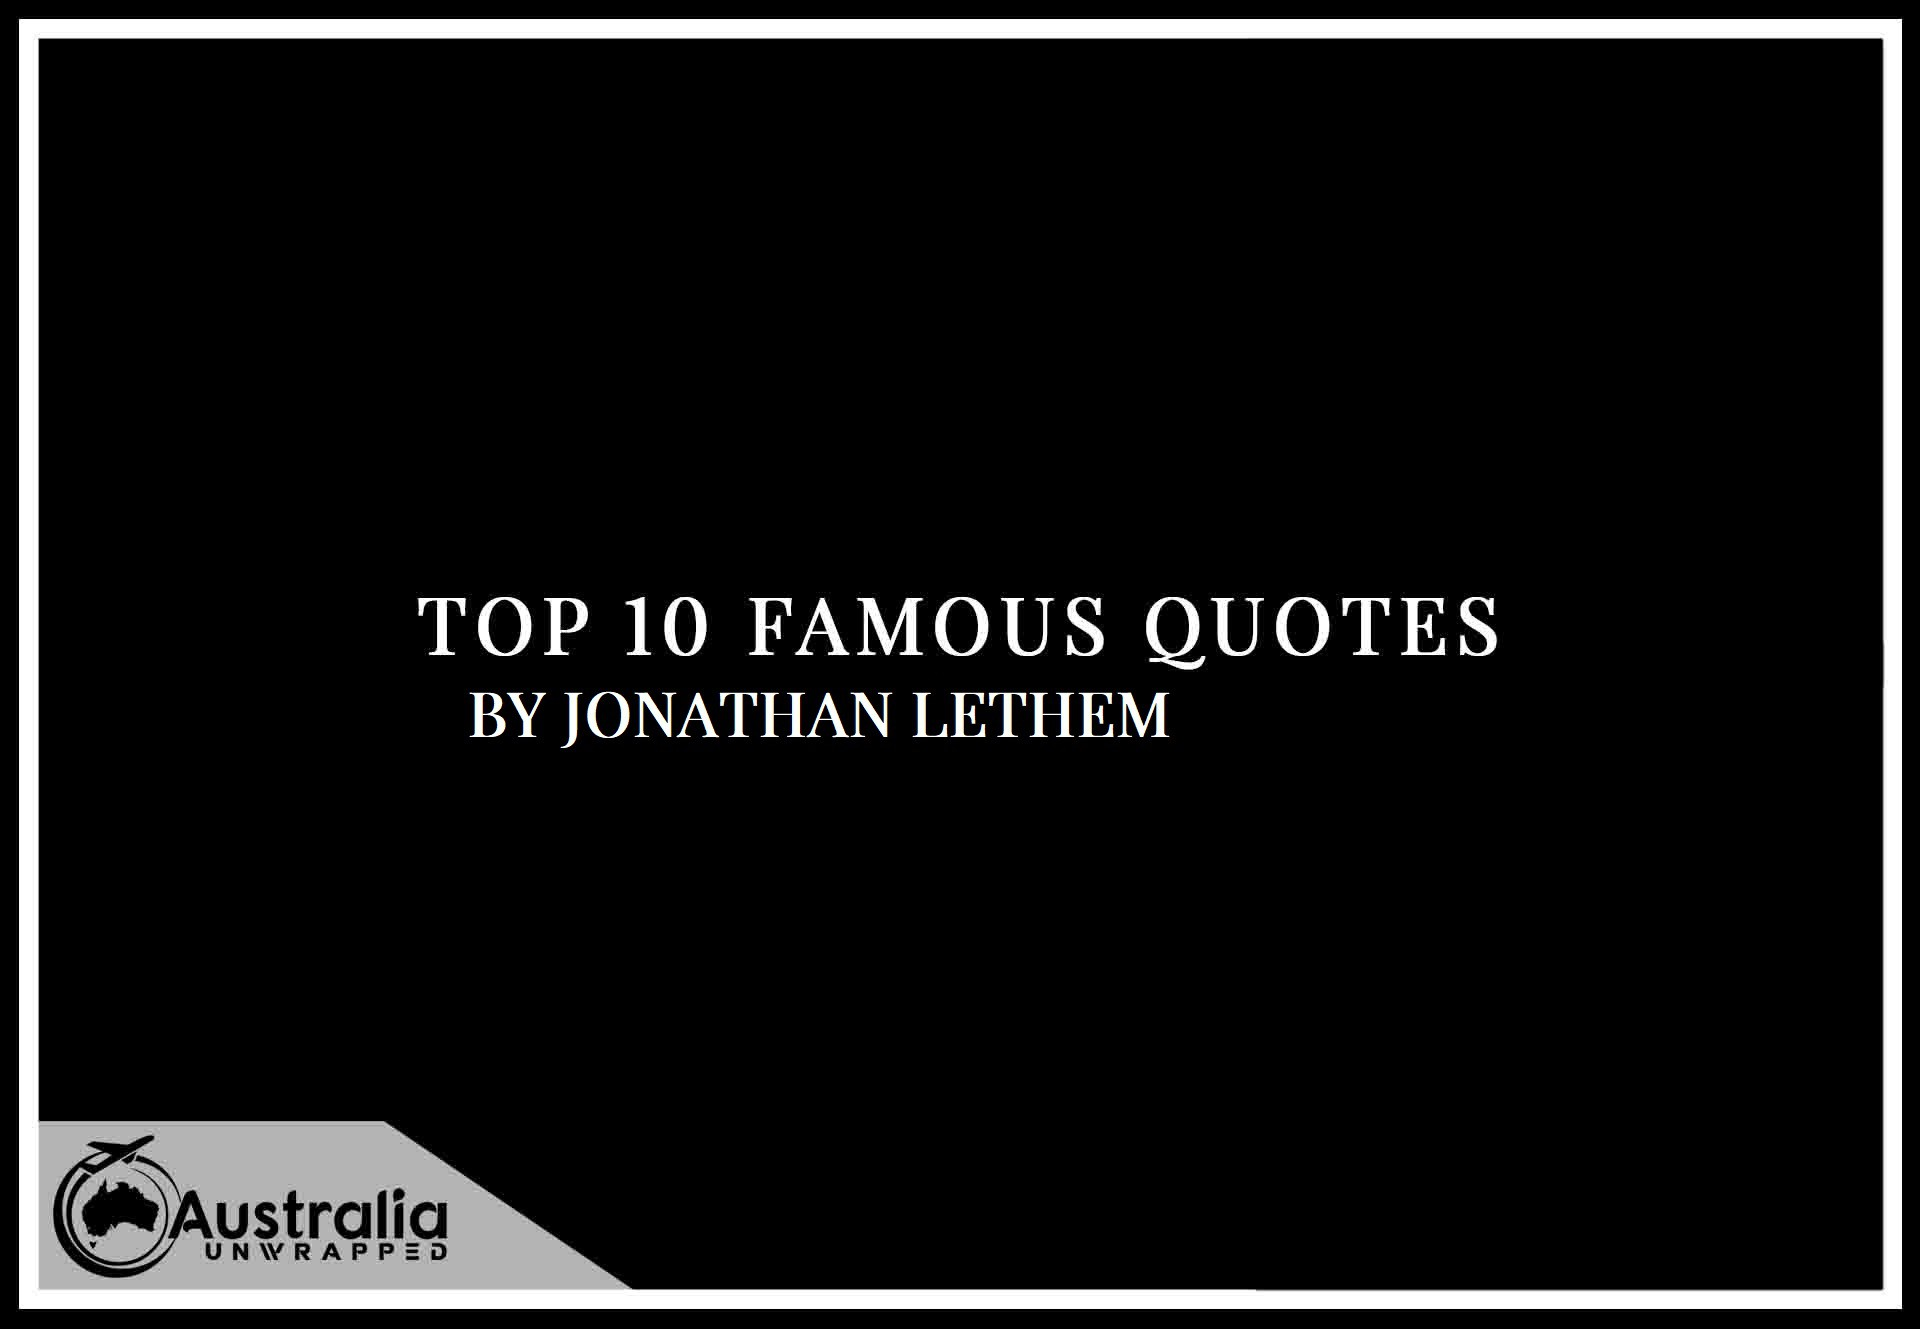 Top 10 Famous Quotes by Author Jonathan Lethem